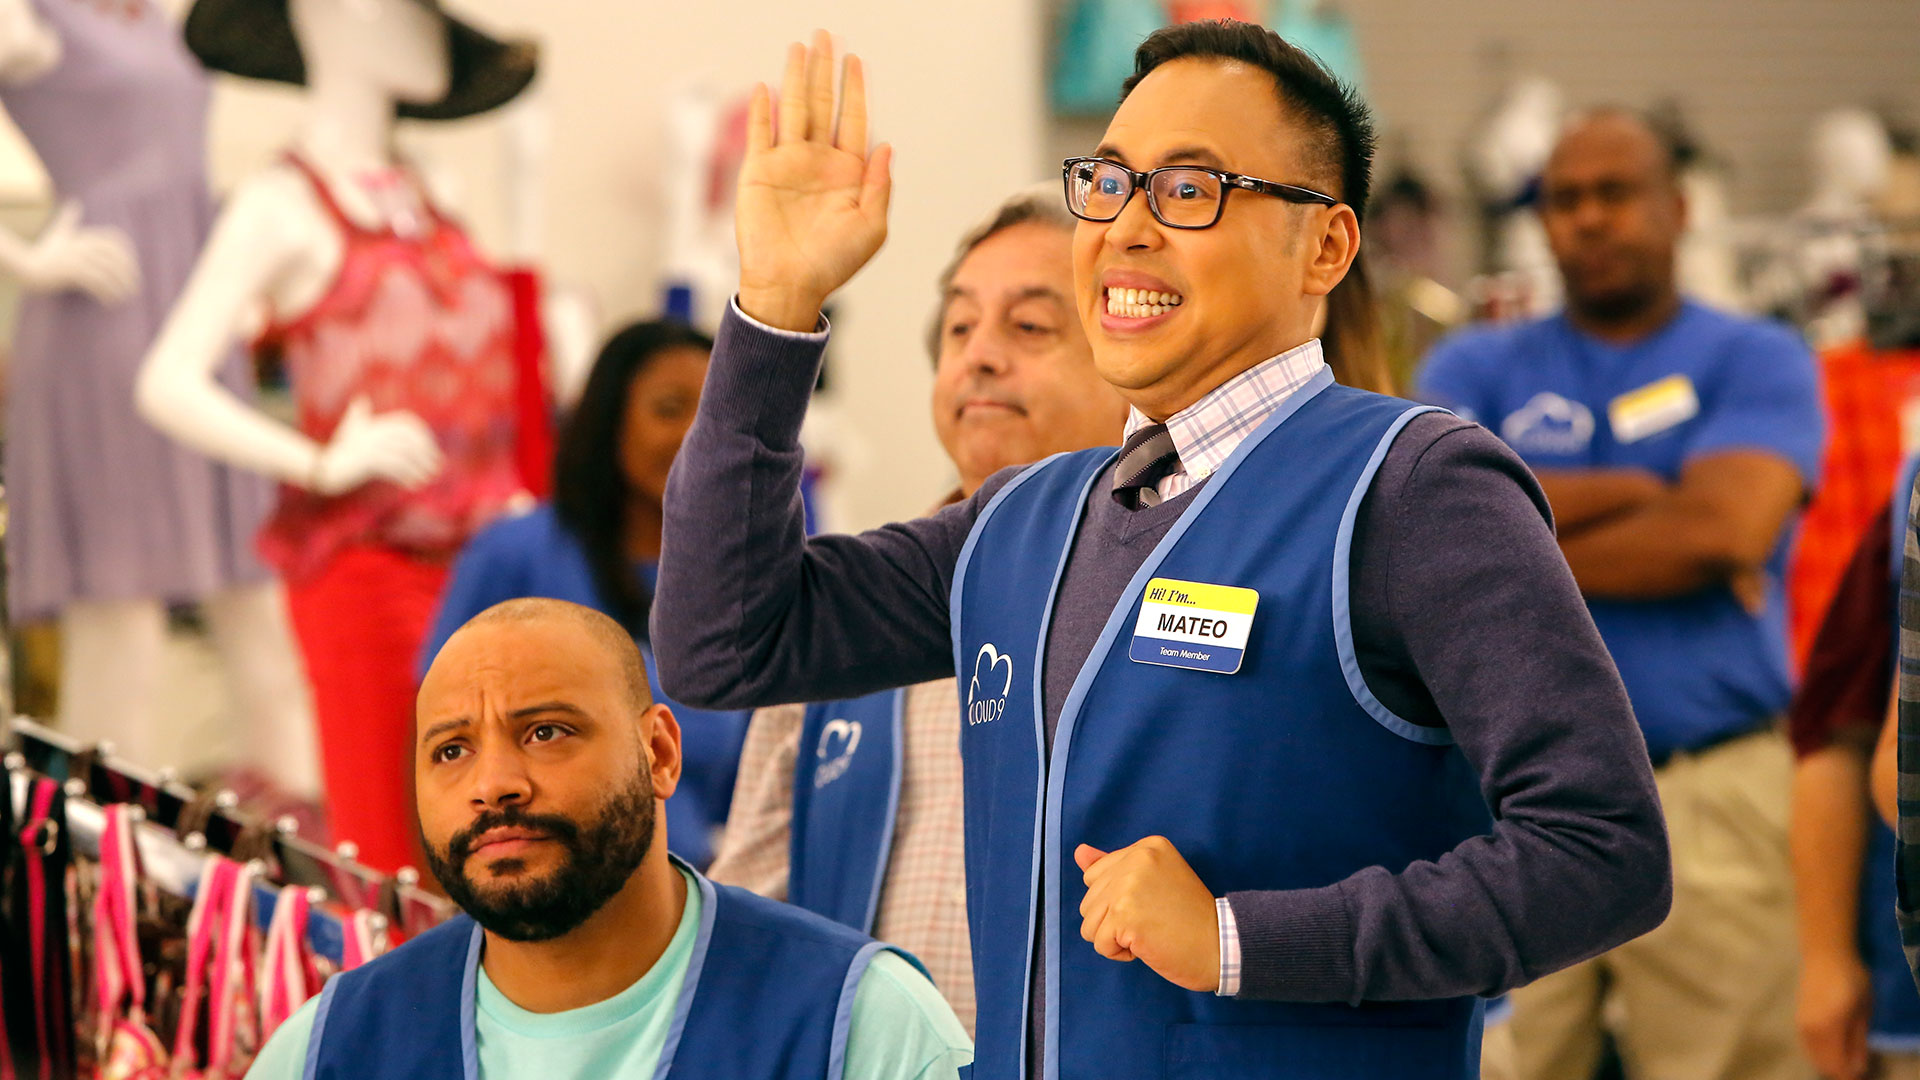 NBC's 'Superstore' Just Gave Us the First Undocumented Filipino Character on Network TV